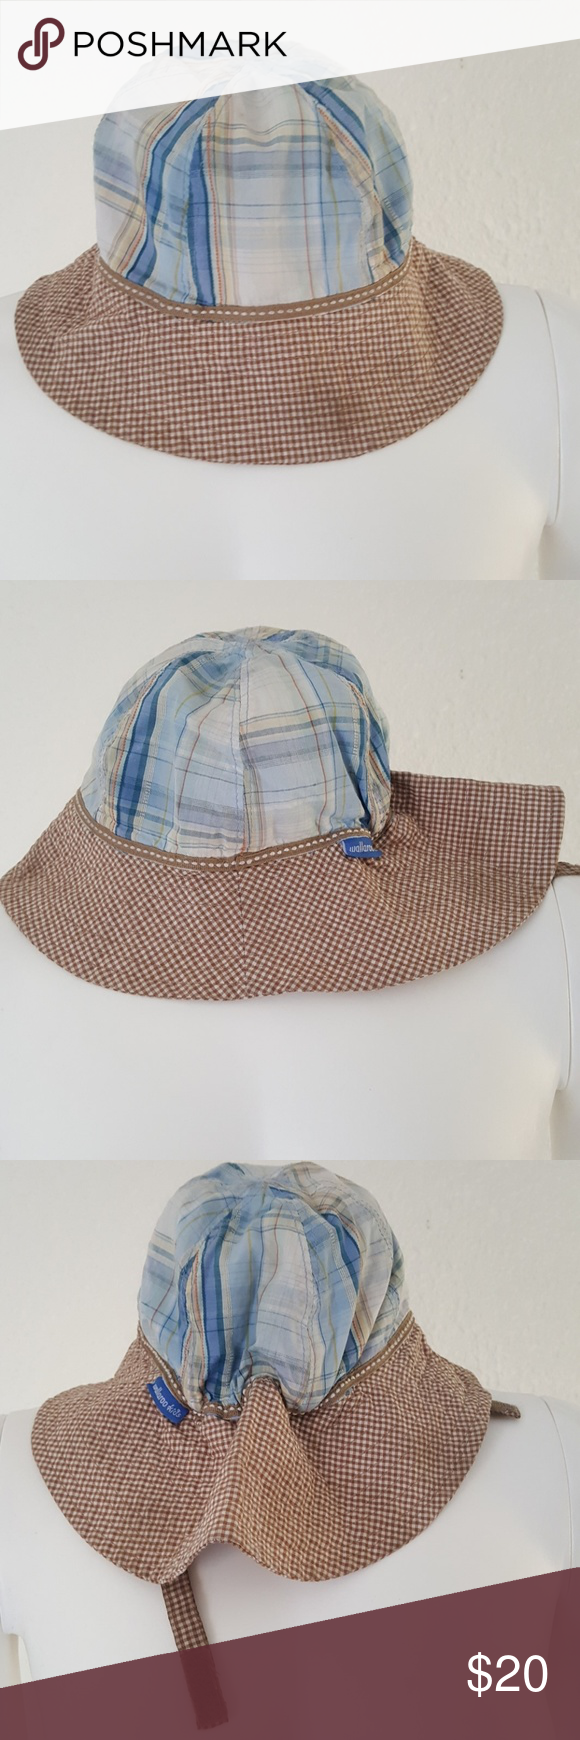 Wallaroo Kids Lids Platypus Bucket Floppy Hat Adorable toddler sized hat for a boy or girl by Wallaroo. From their kids line called Kids Lids, style name is Platypus. Extra wide brim forvadded protection at back of neck. Should fit kids ages 1 to 2-1/2 years old. Wide brim is same white tan plaid checks on both sides. Velcro chin strap. Terry blue is inside but could be reversible if you want, just cut white tag. Wallaroo Accessories Hats